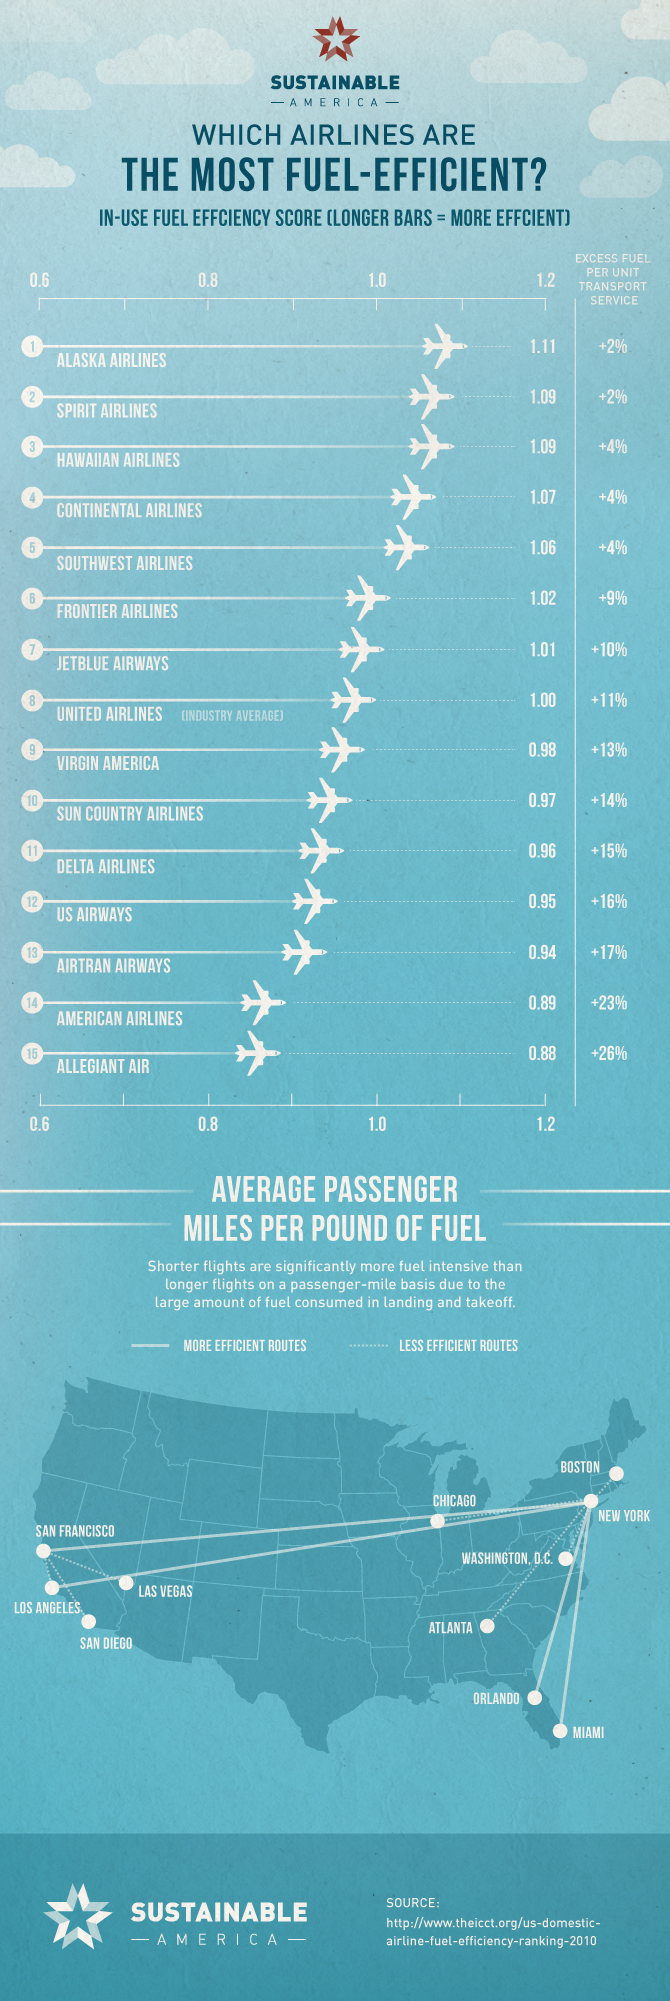 Airline_Fuel_Efficiency_Ranking